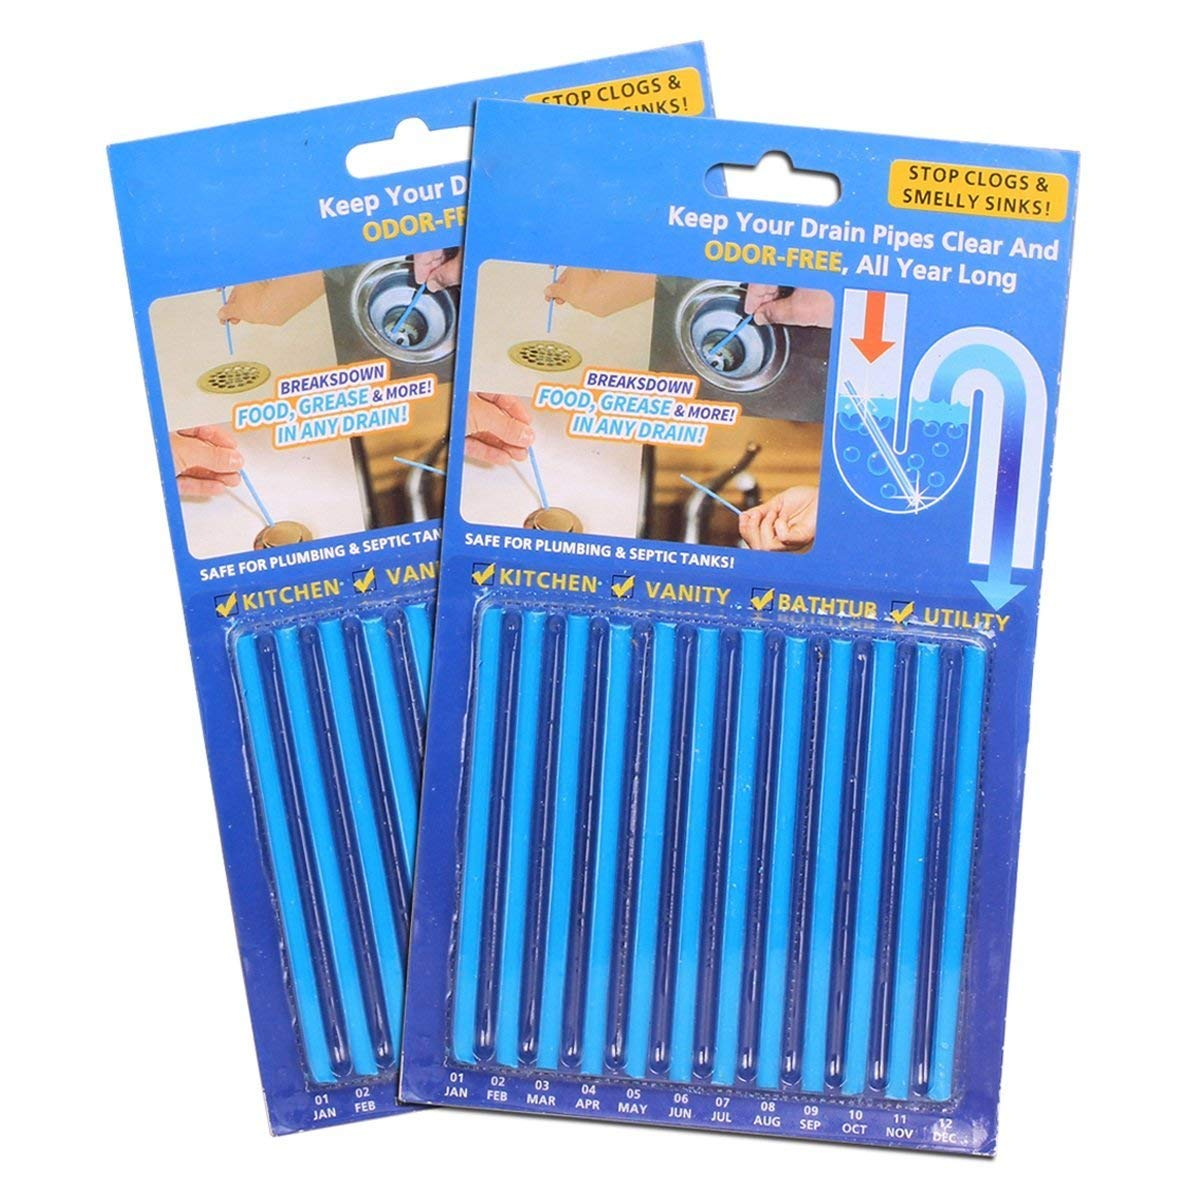 Drain Stix Drain Sticks Clean Sticks Garbage Disposal Cleaner and Deodorizer Keeps Drains & Sewer Clear and Odor Free 24 Pcs/2Pack (Cleaner-41)